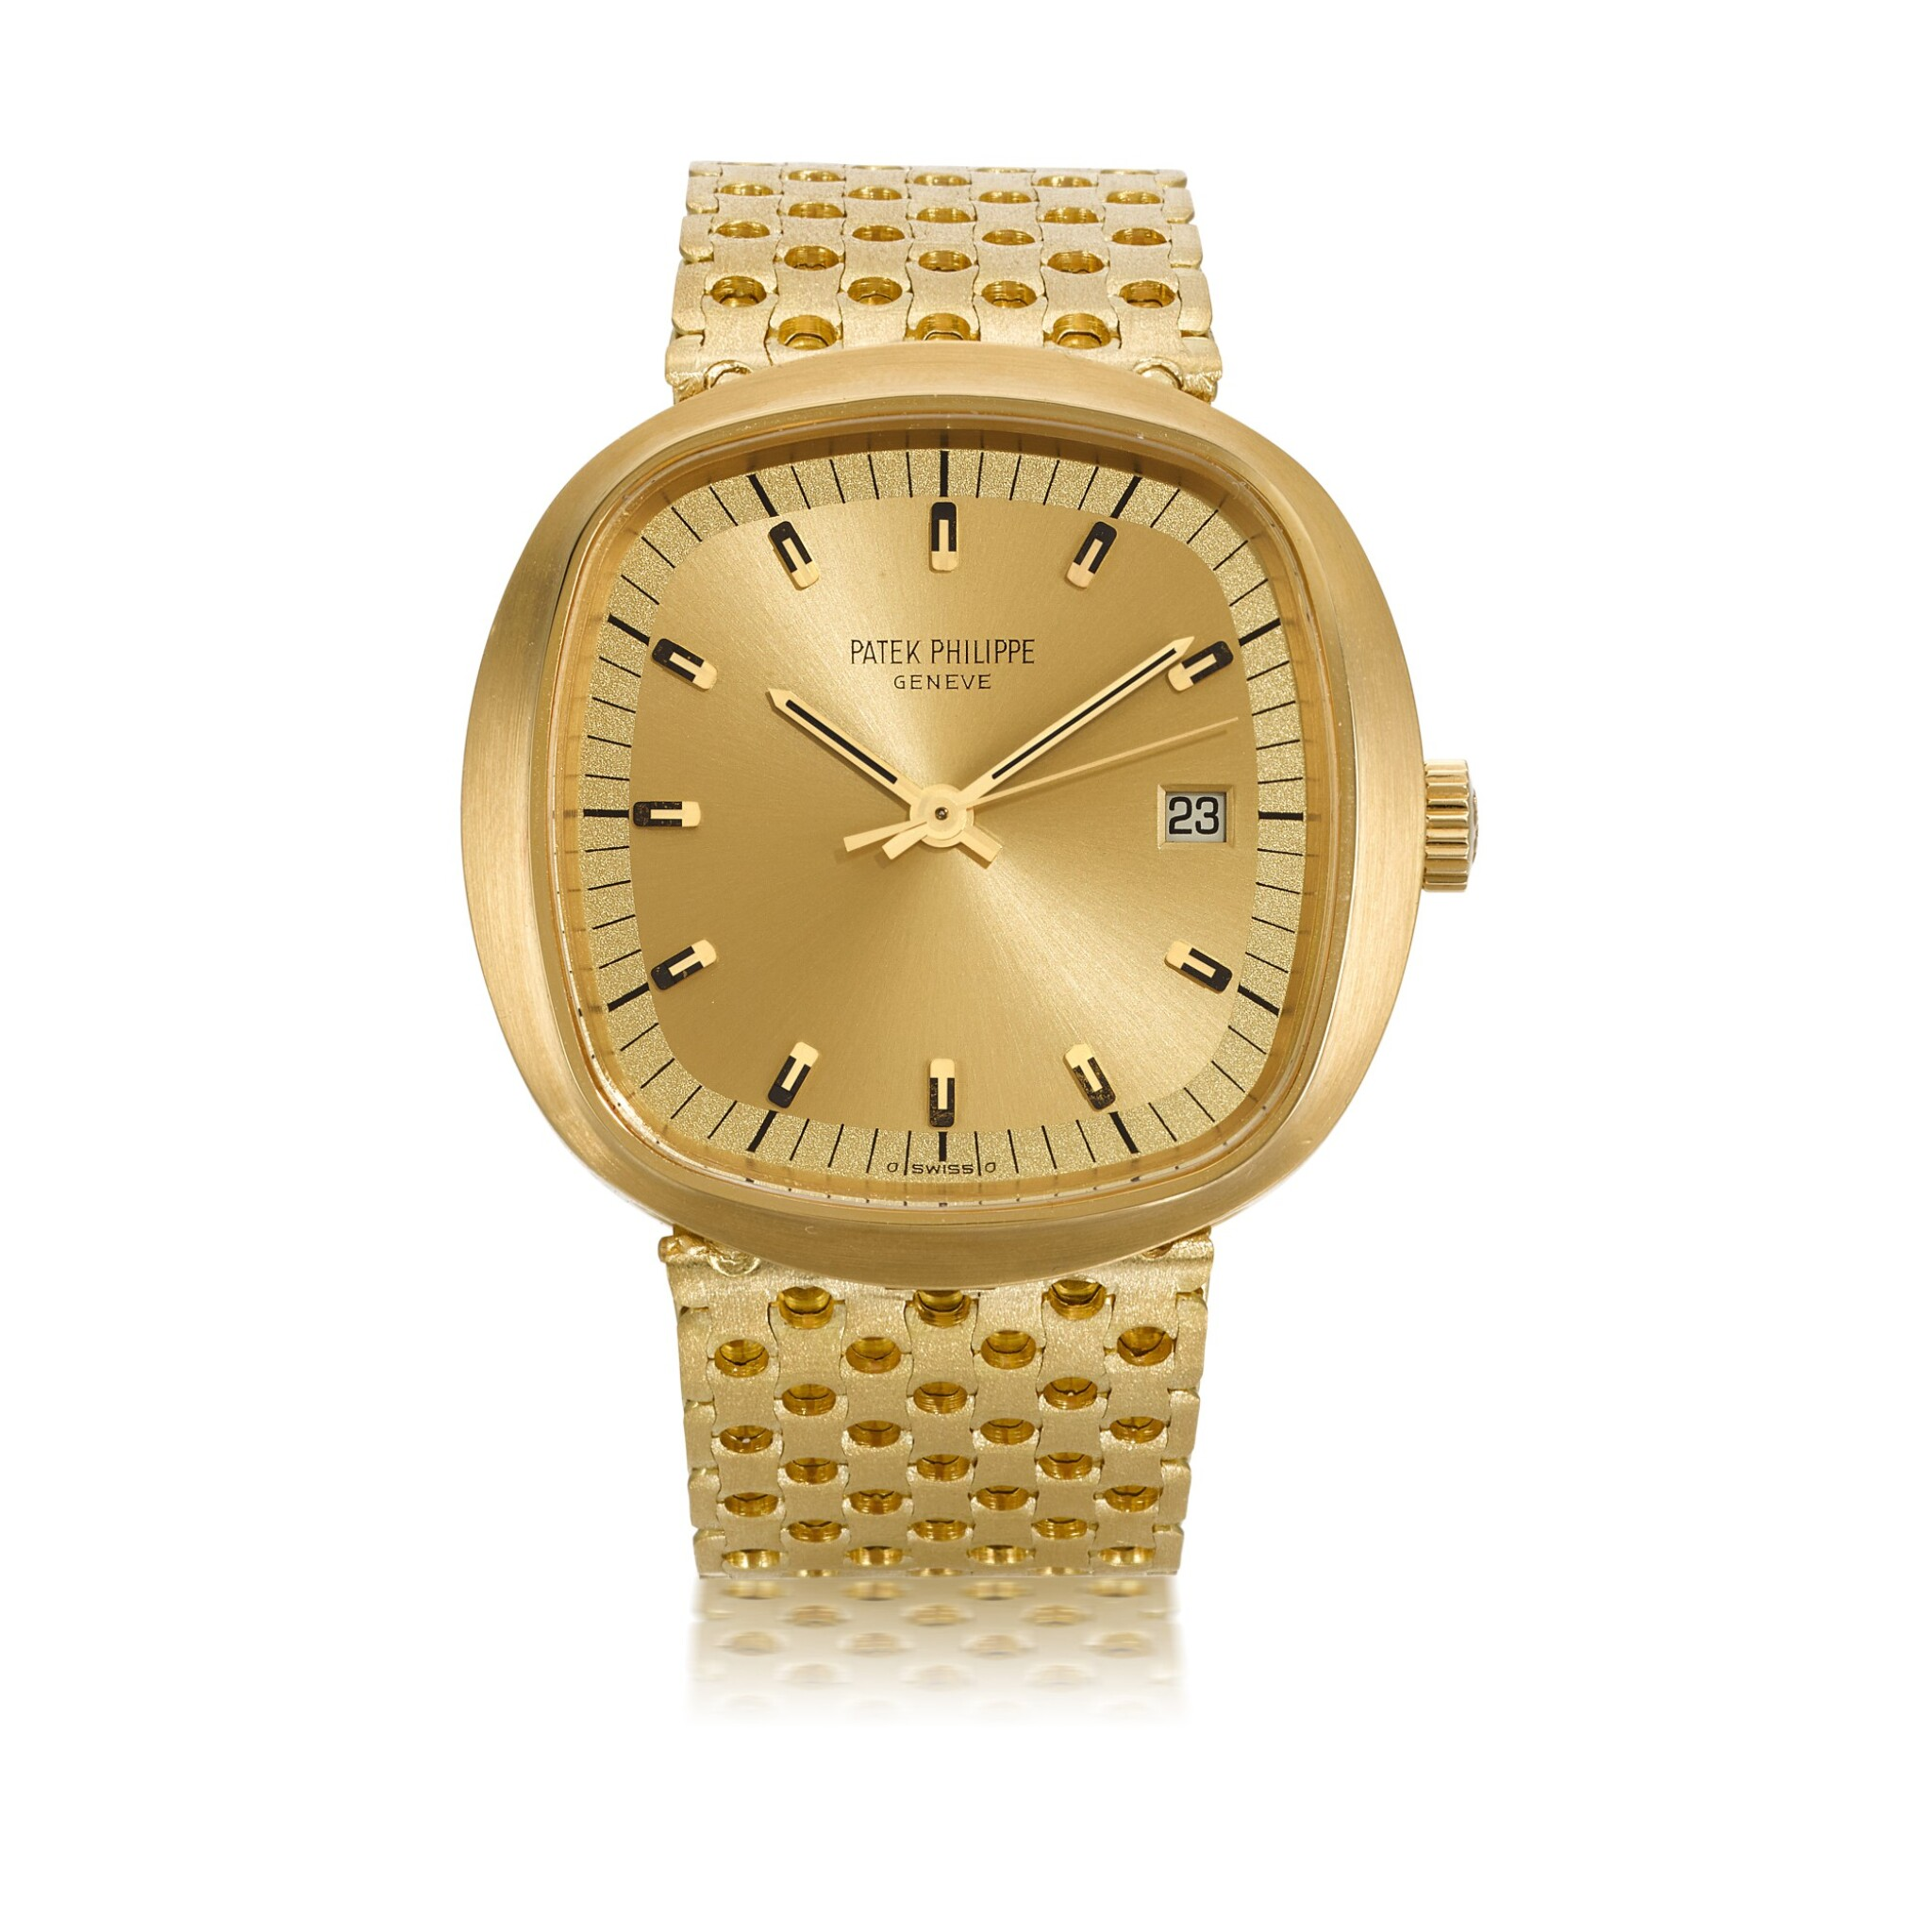 View full screen - View 1 of Lot 1201. PATEK PHILIPPE | BETA 21, REF 3597/2, LARGE YELLOW GOLD CUSHION-FORM BRACELET WATCH WITH DATE MADE IN 1974.